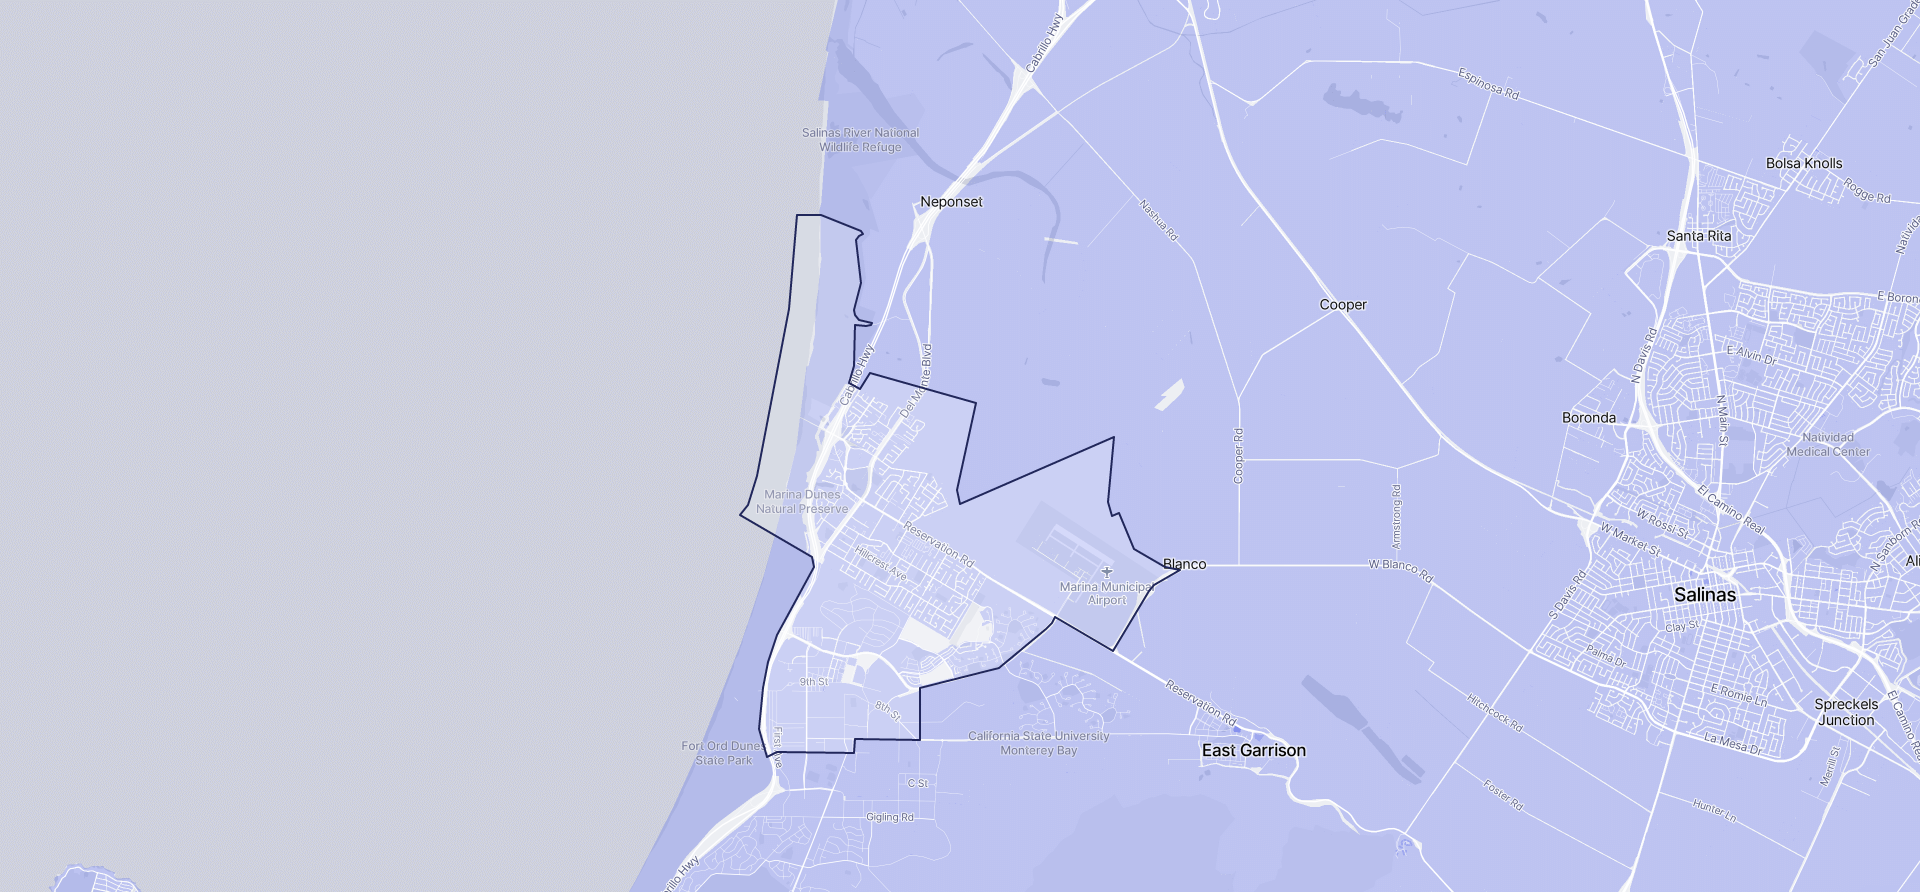 Image of Marina boundaries on a map.